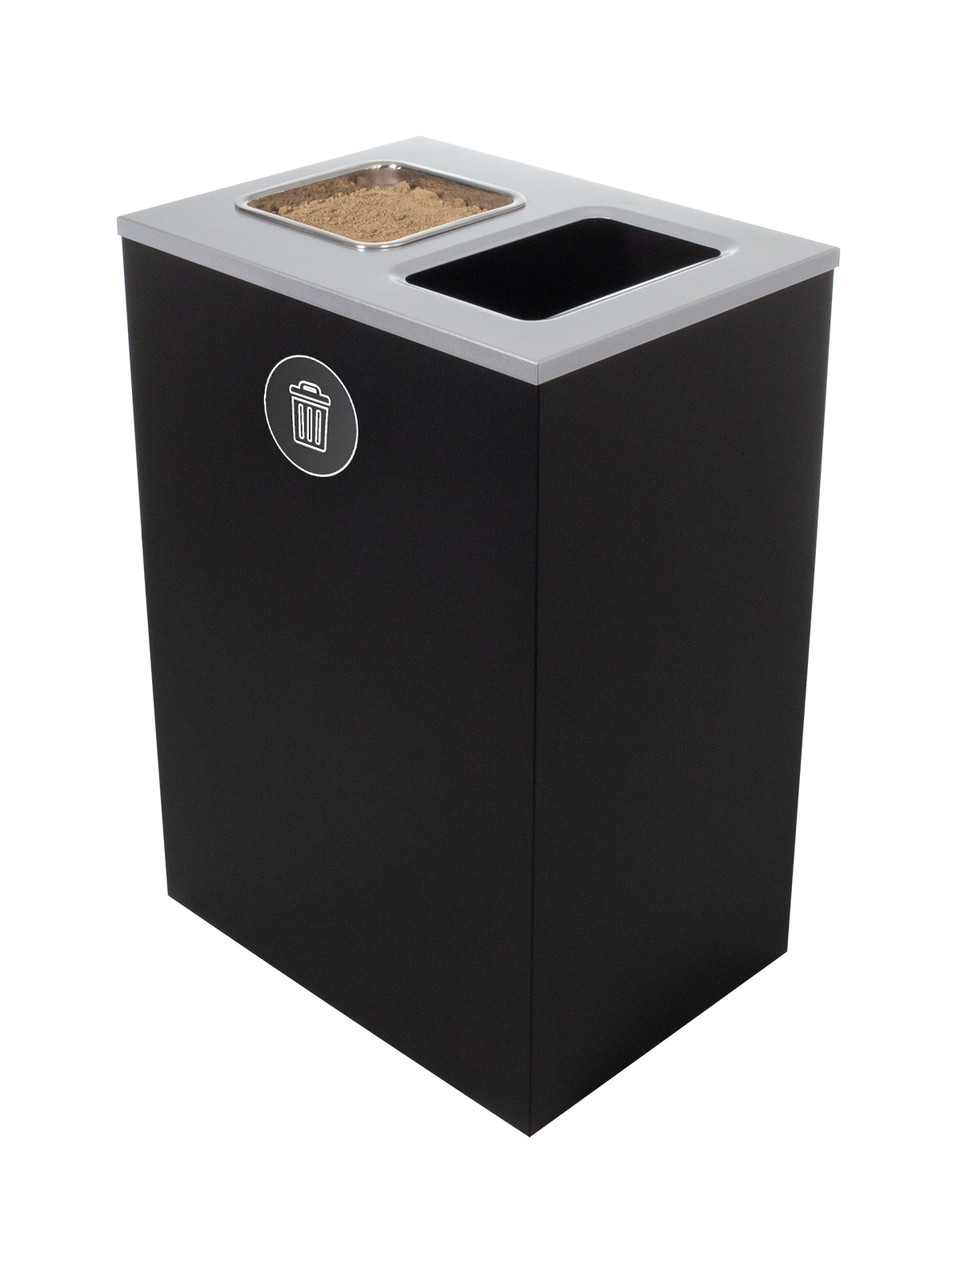 32 Gallon Steel Spectrum Cube XL Ash and Trash Can Black 8107136-4